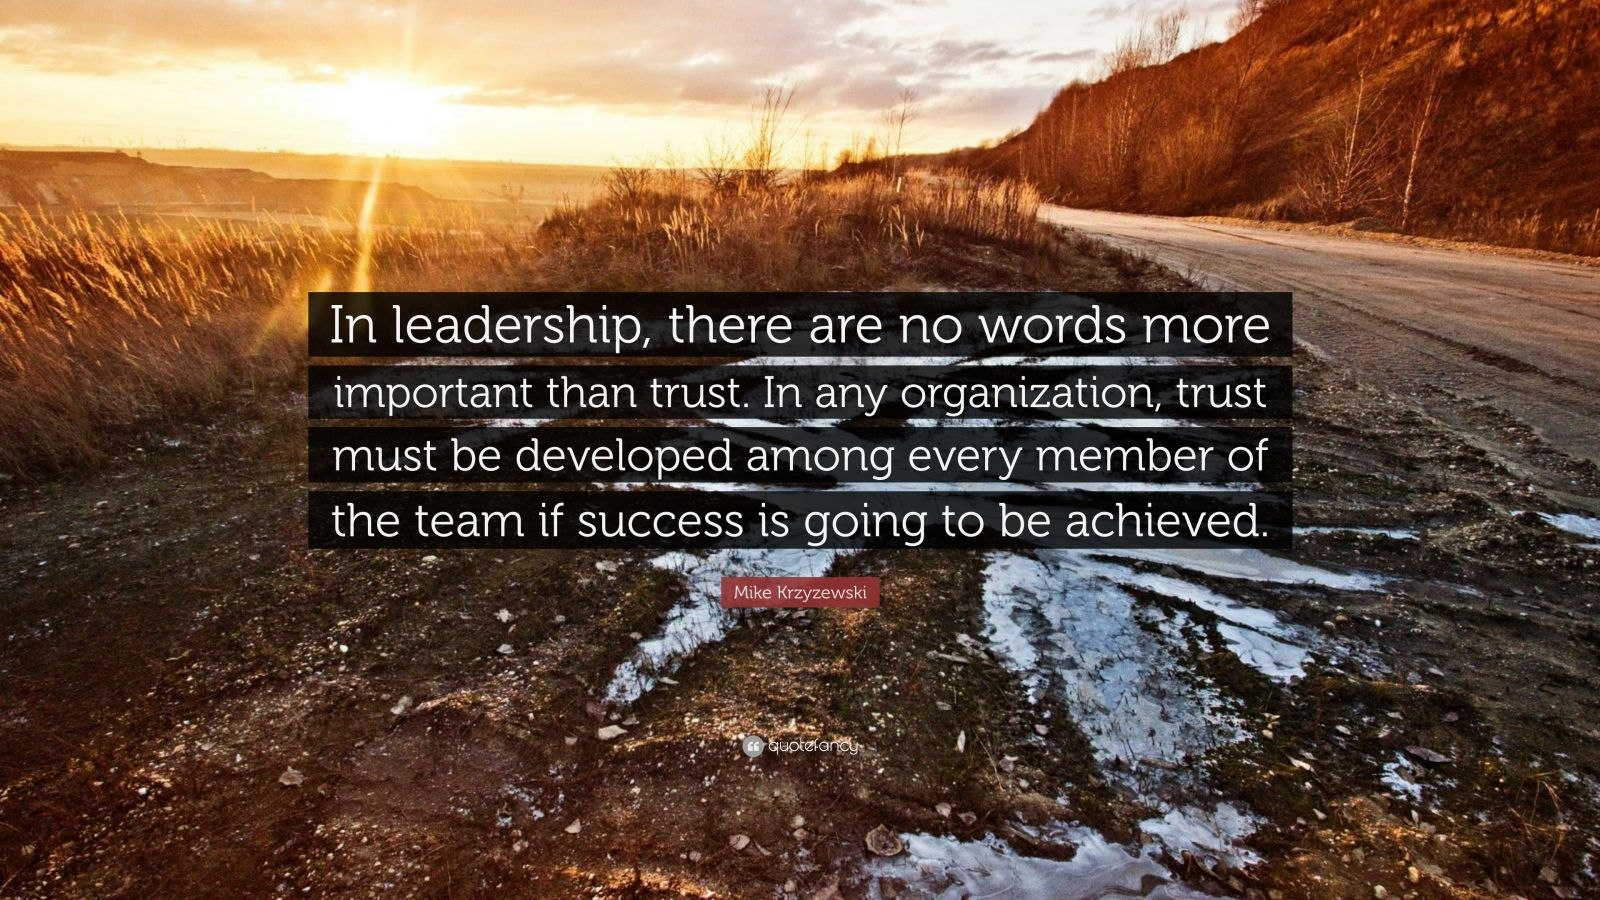 """Mike Krzyzewski Quote: """"In leadership, there are no words more important than trust. In any organization, trust must be developed among every member of the team if success is going to be achieved."""""""